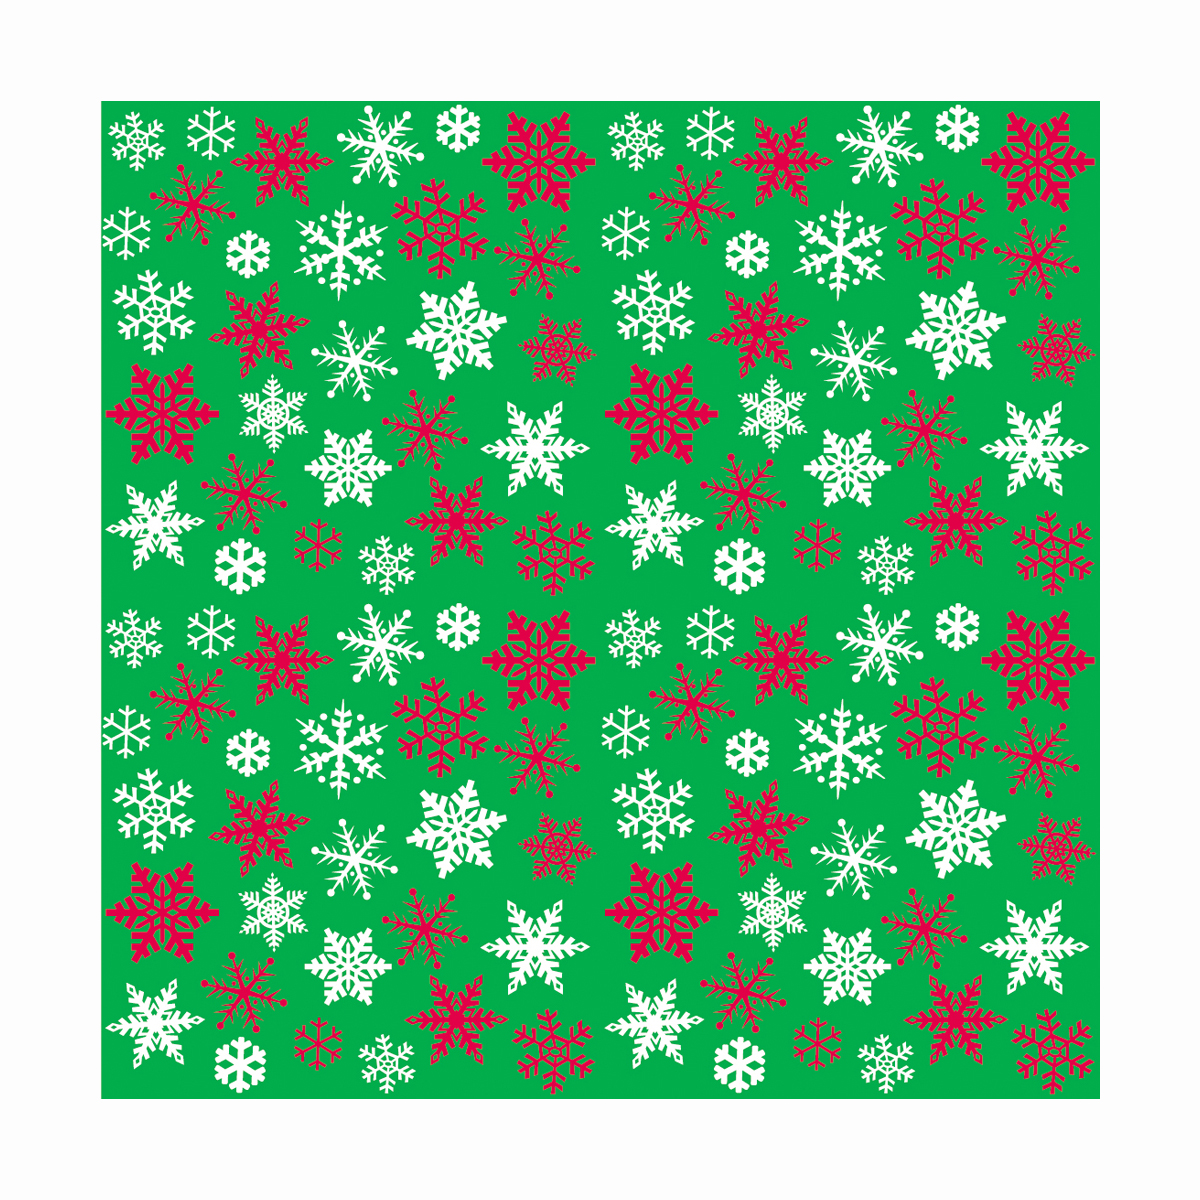 (2 pack) Snowflakes Holiday Wrapping Paper, 5 x 2.5ft